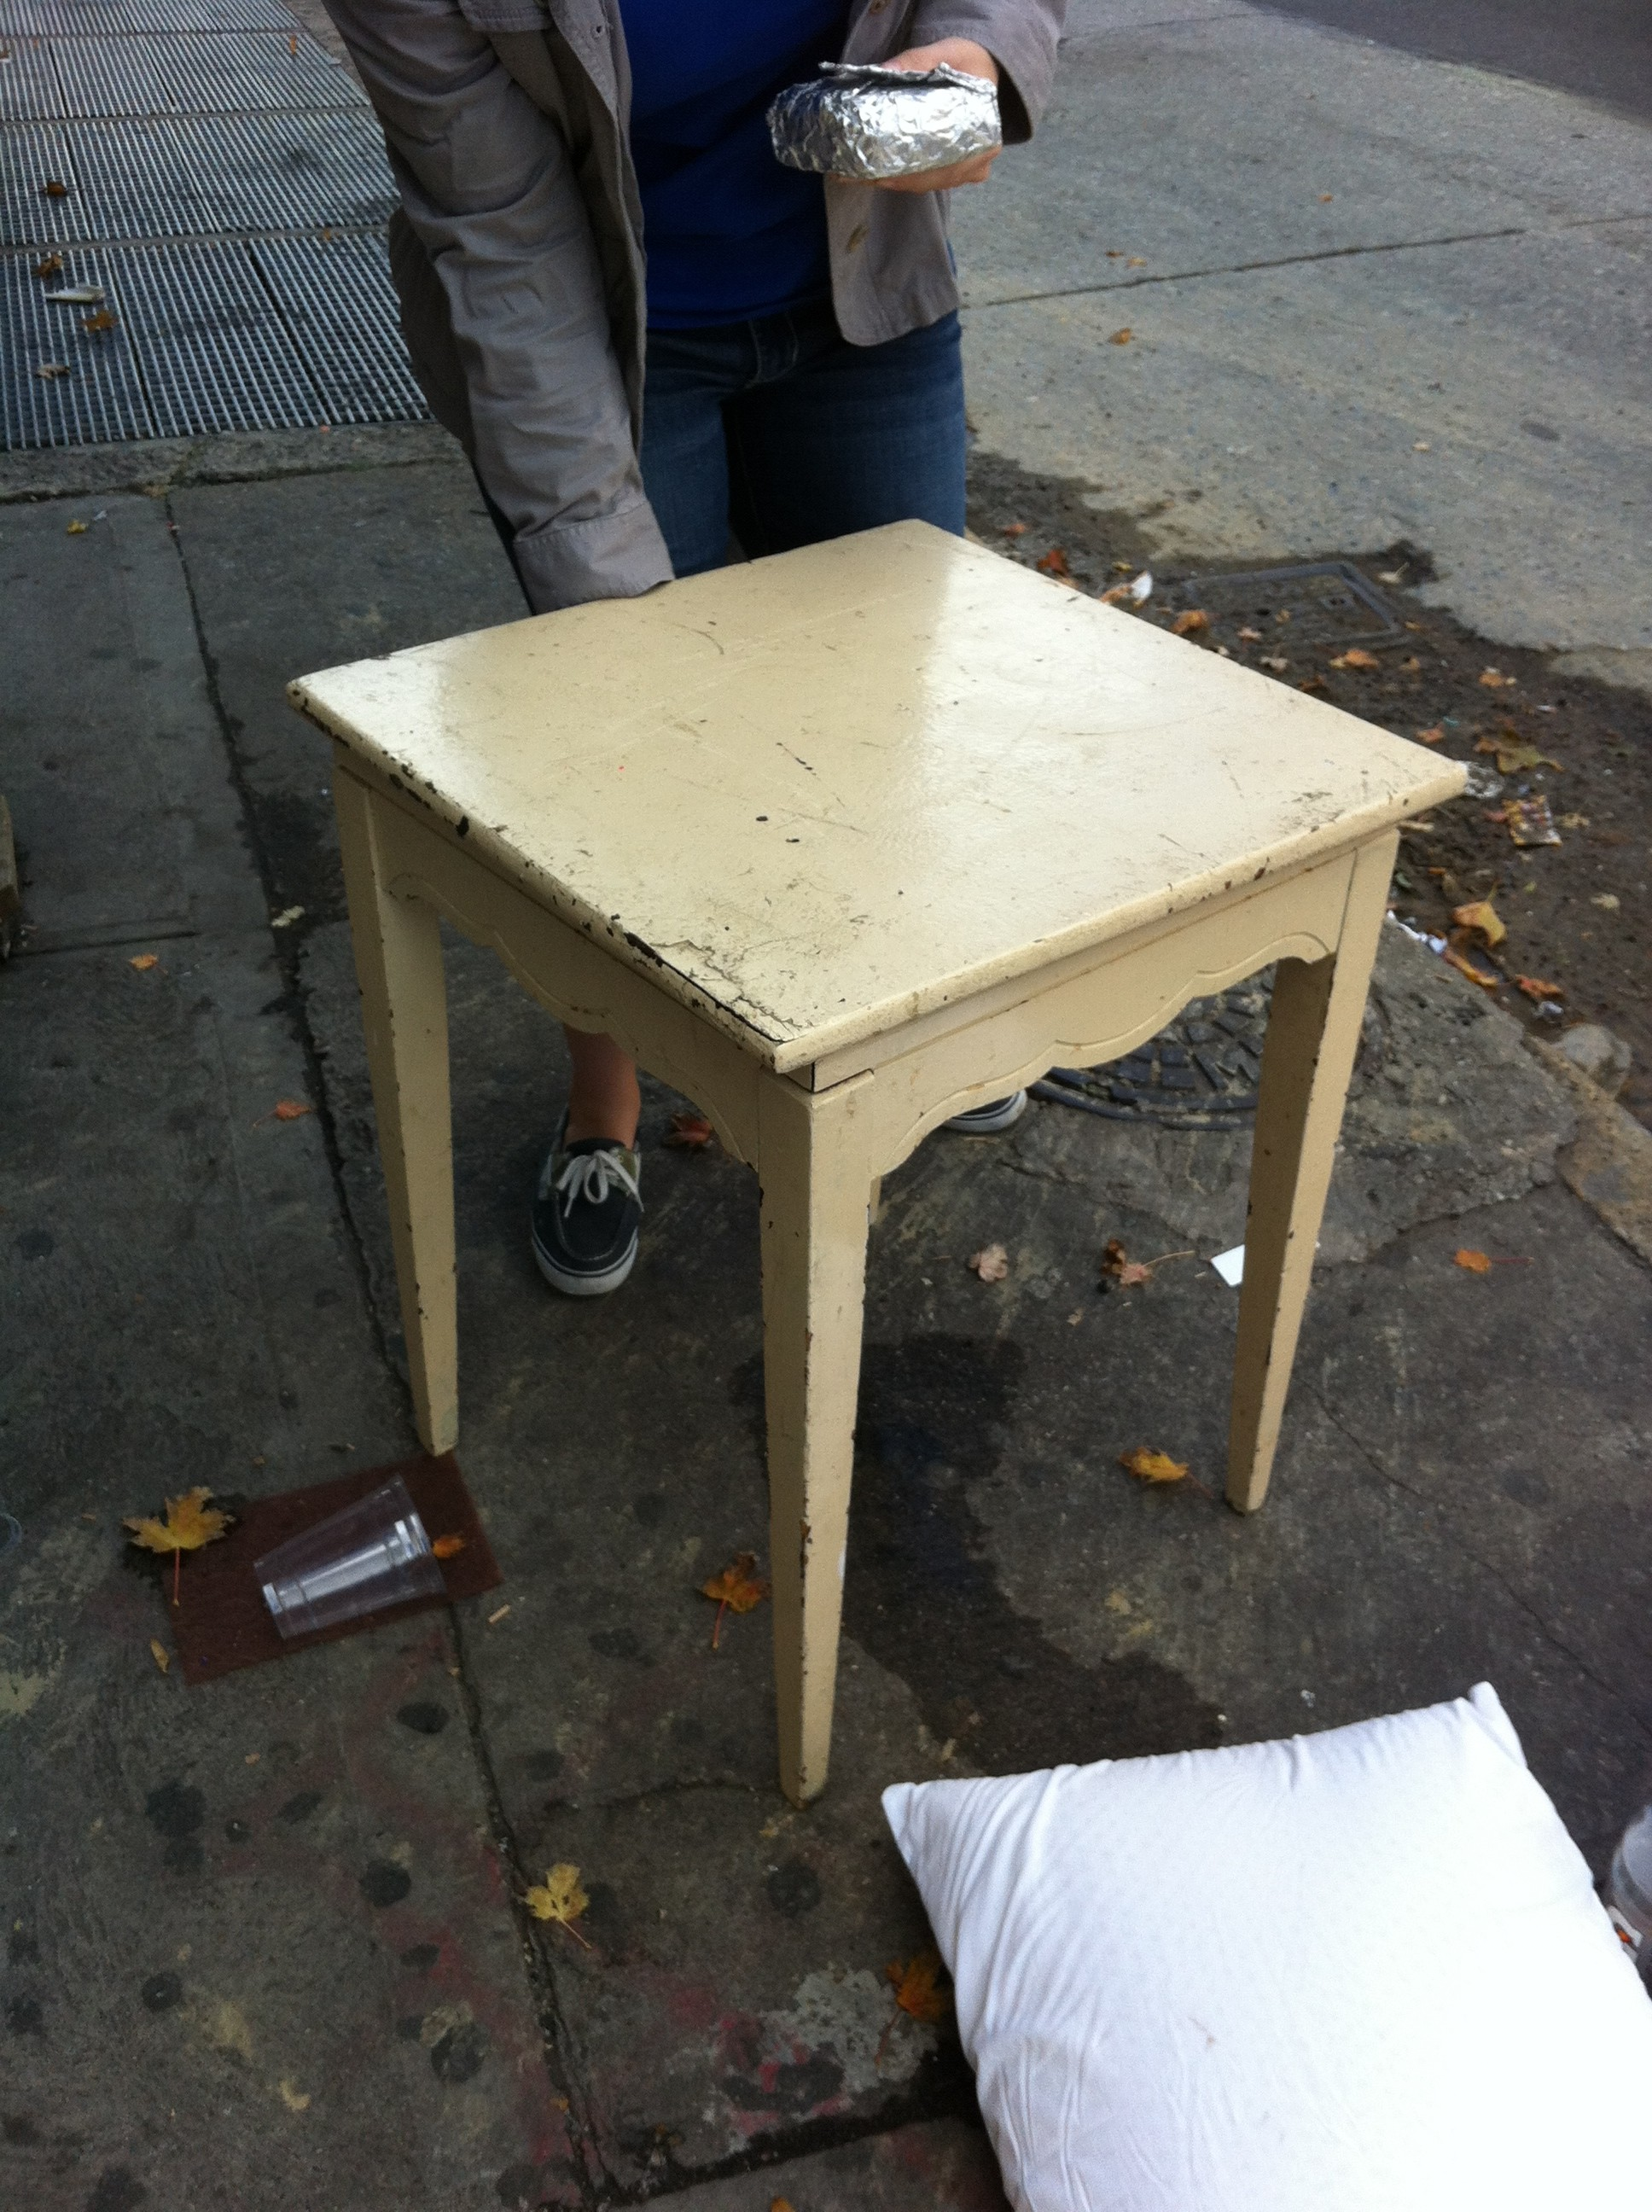 A pic of a wooden side table left out on the curb